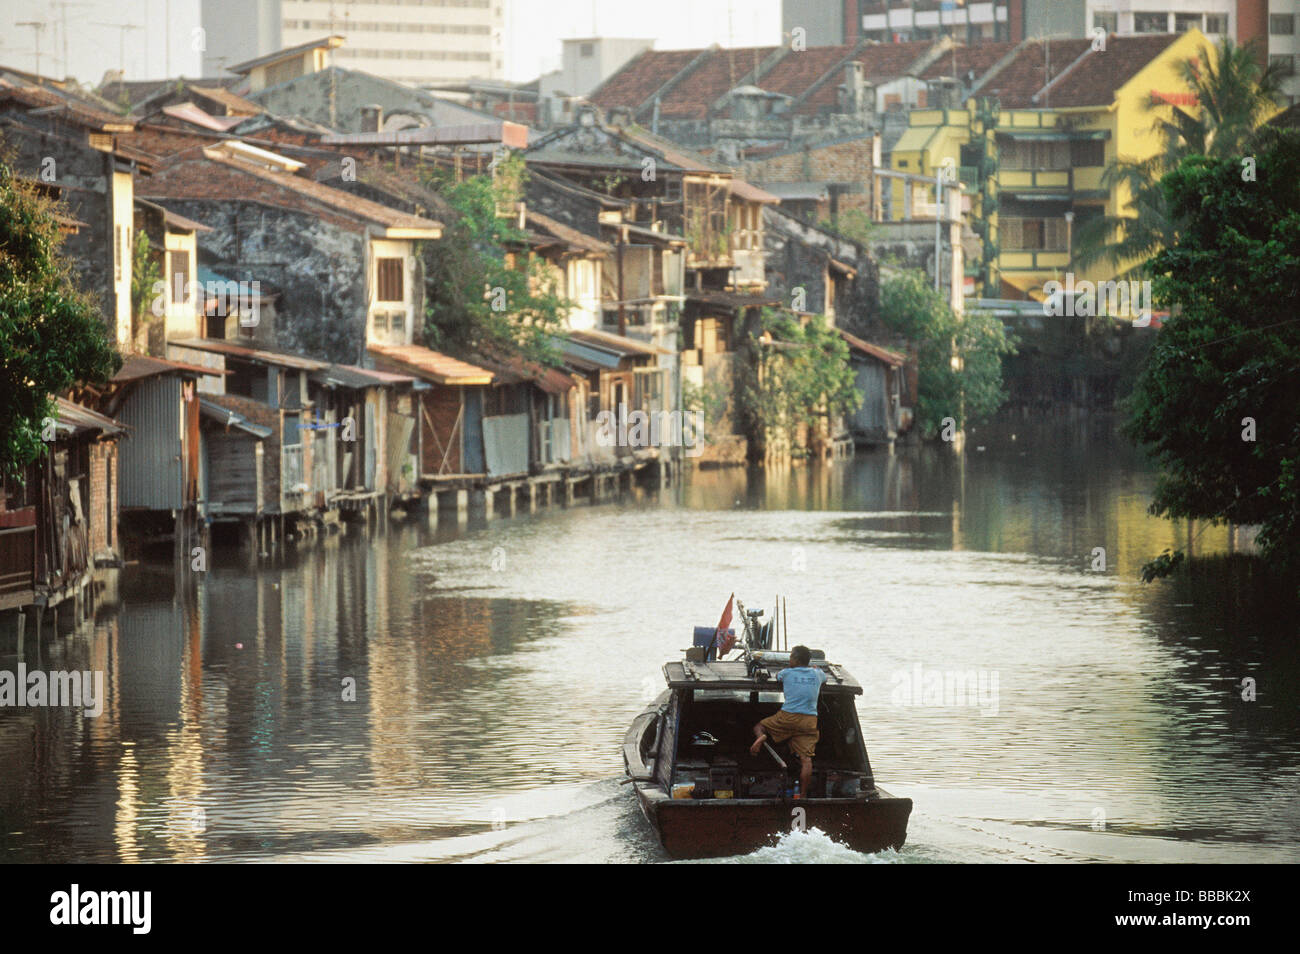 Malaysia, Malacca, a riverboat plies up the Malacca River. - Stock Image